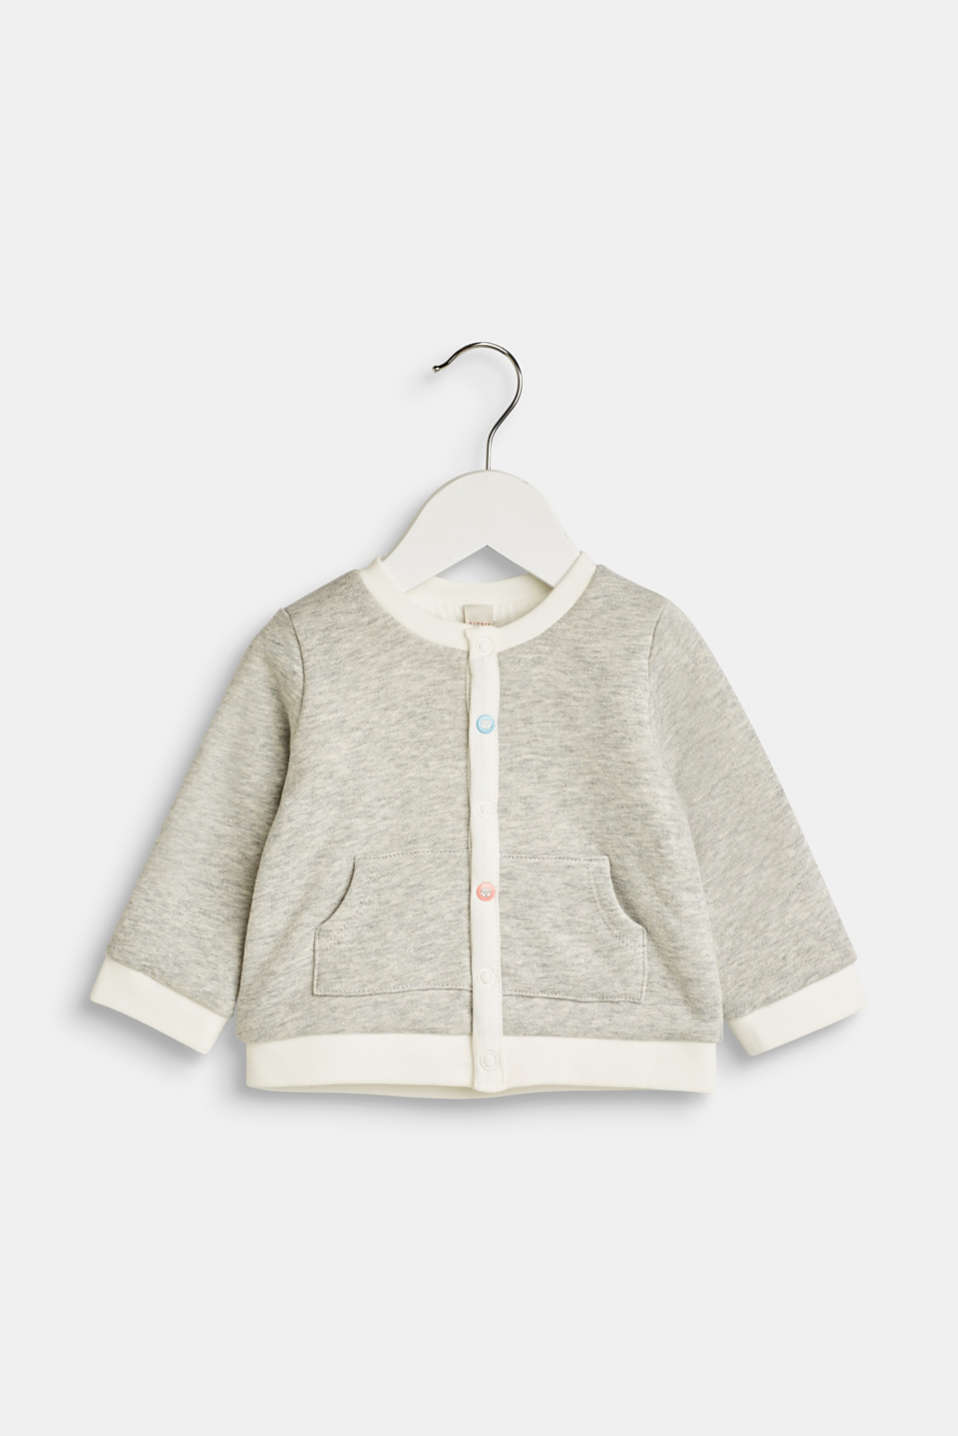 Esprit - Sweatshirt cardigan with organic cotton